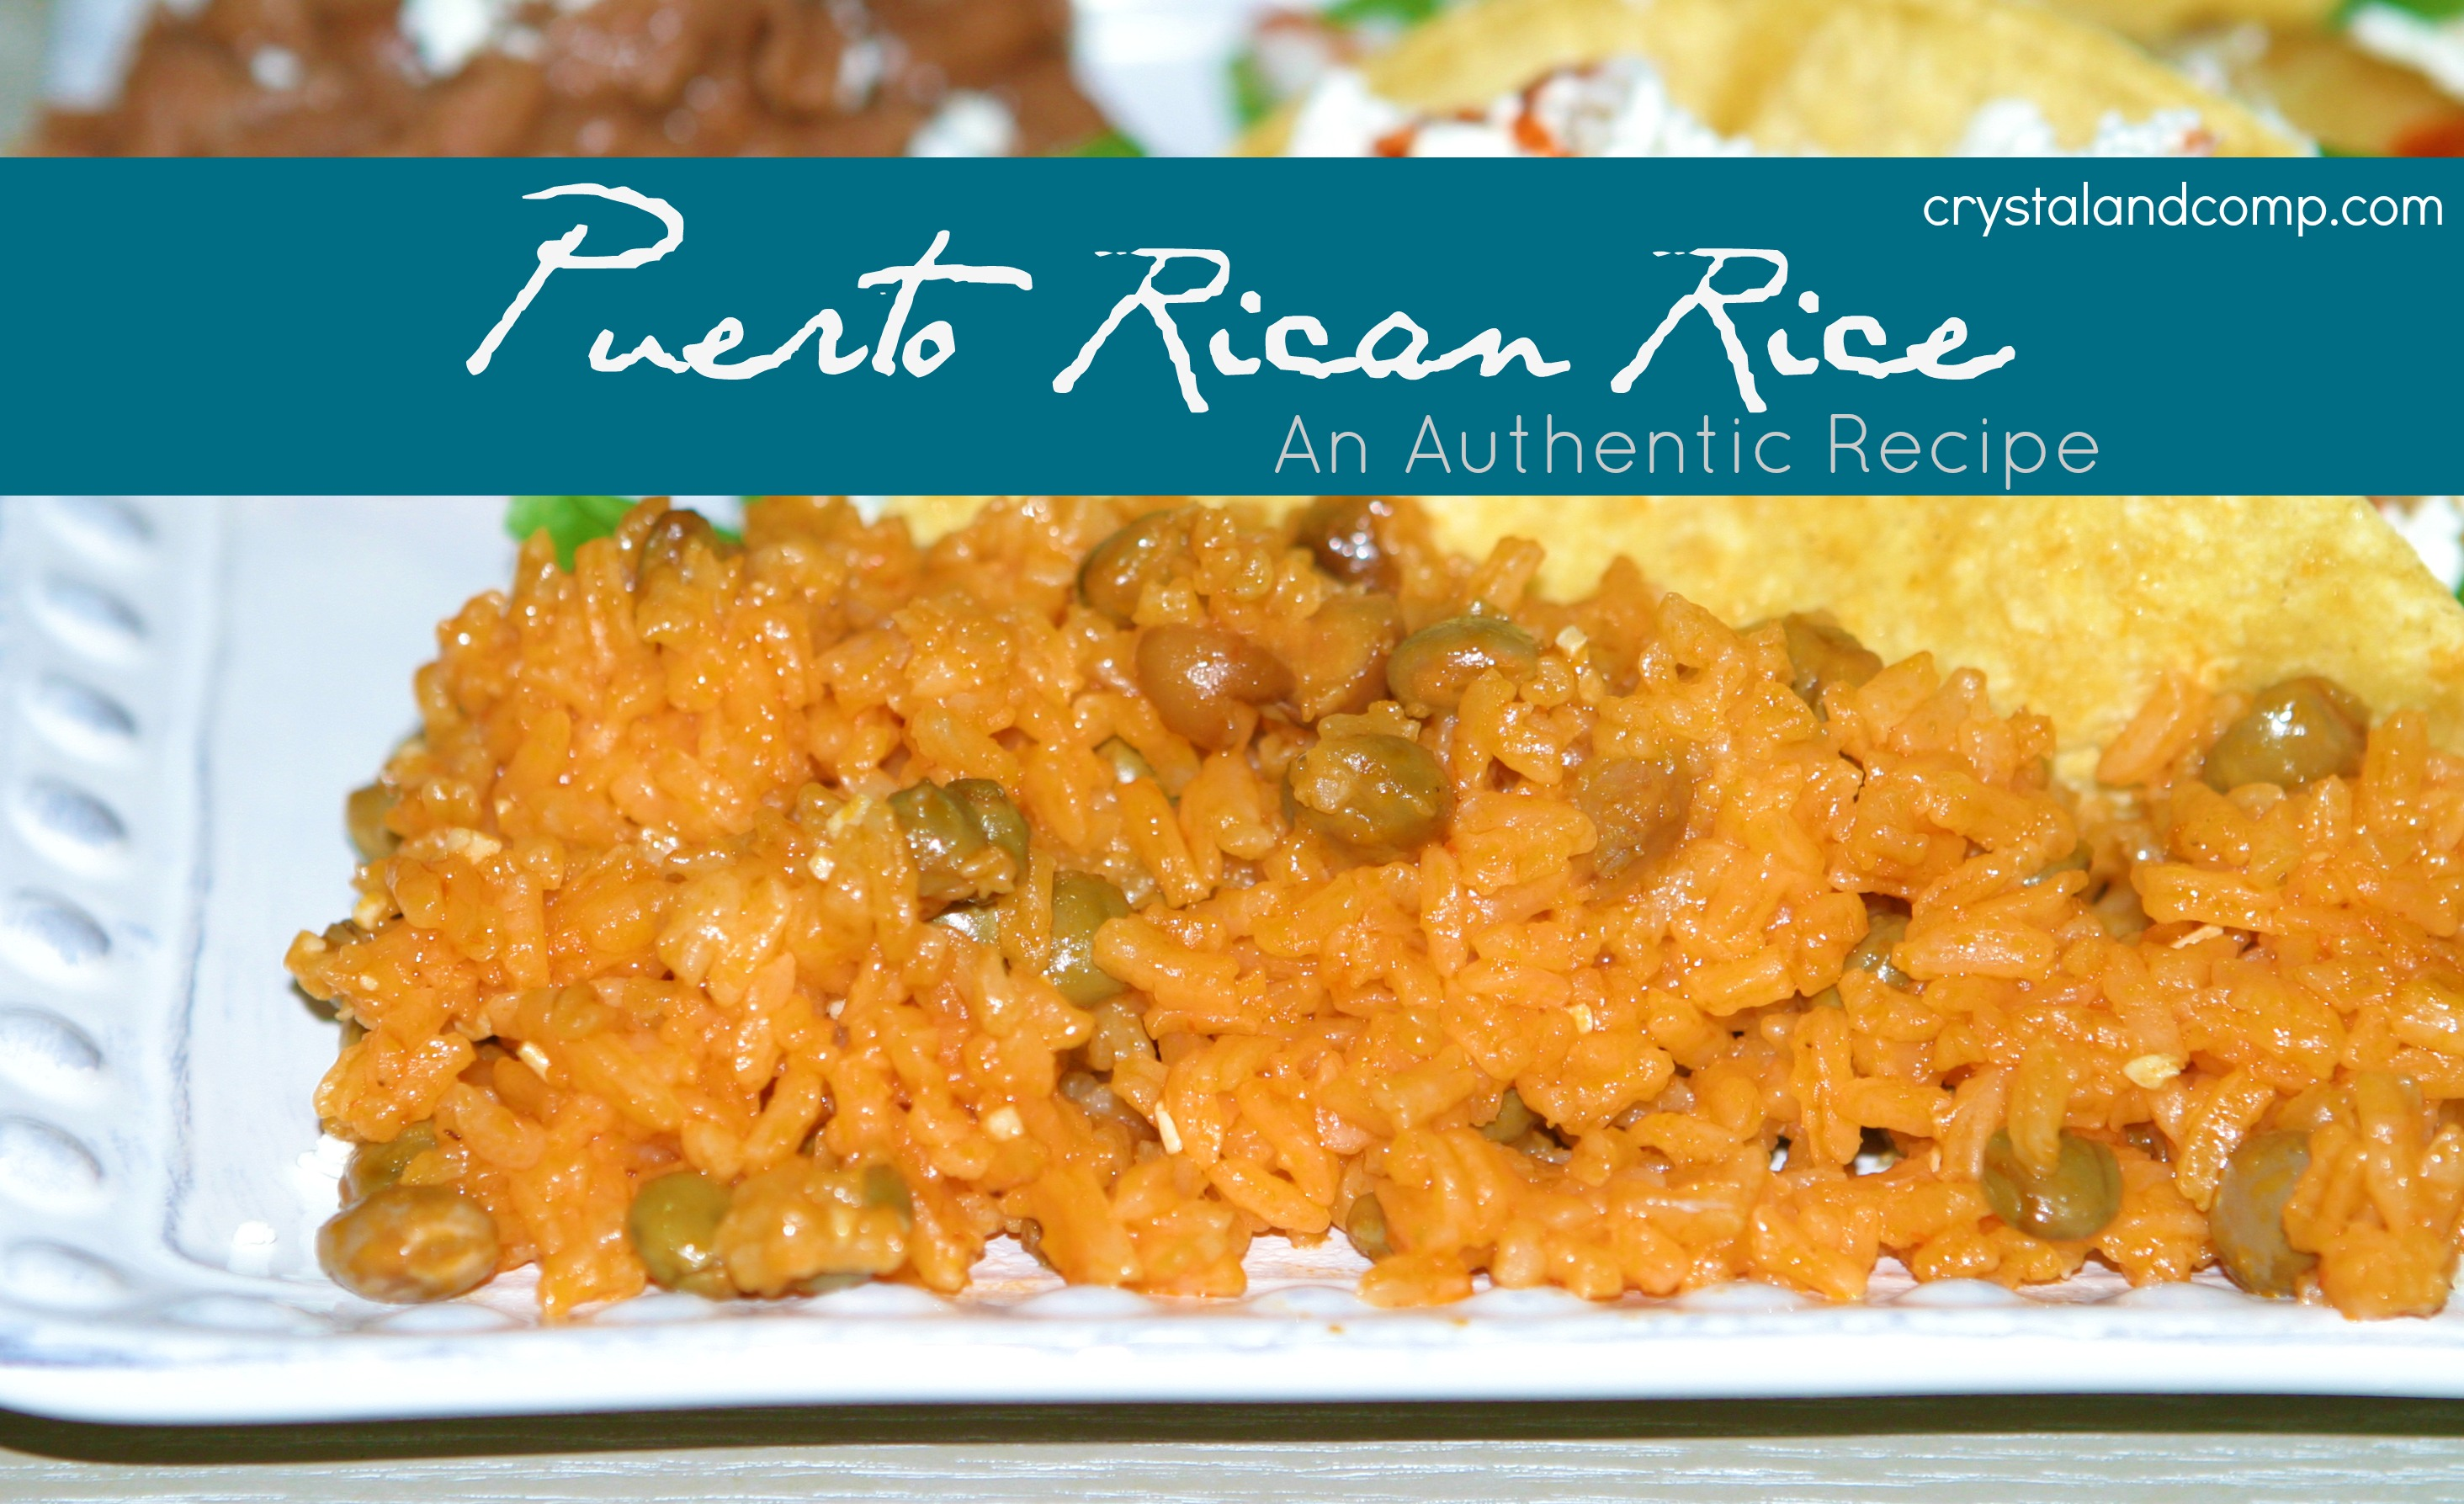 How to make gandules rice puerto rican rice forumfinder Images